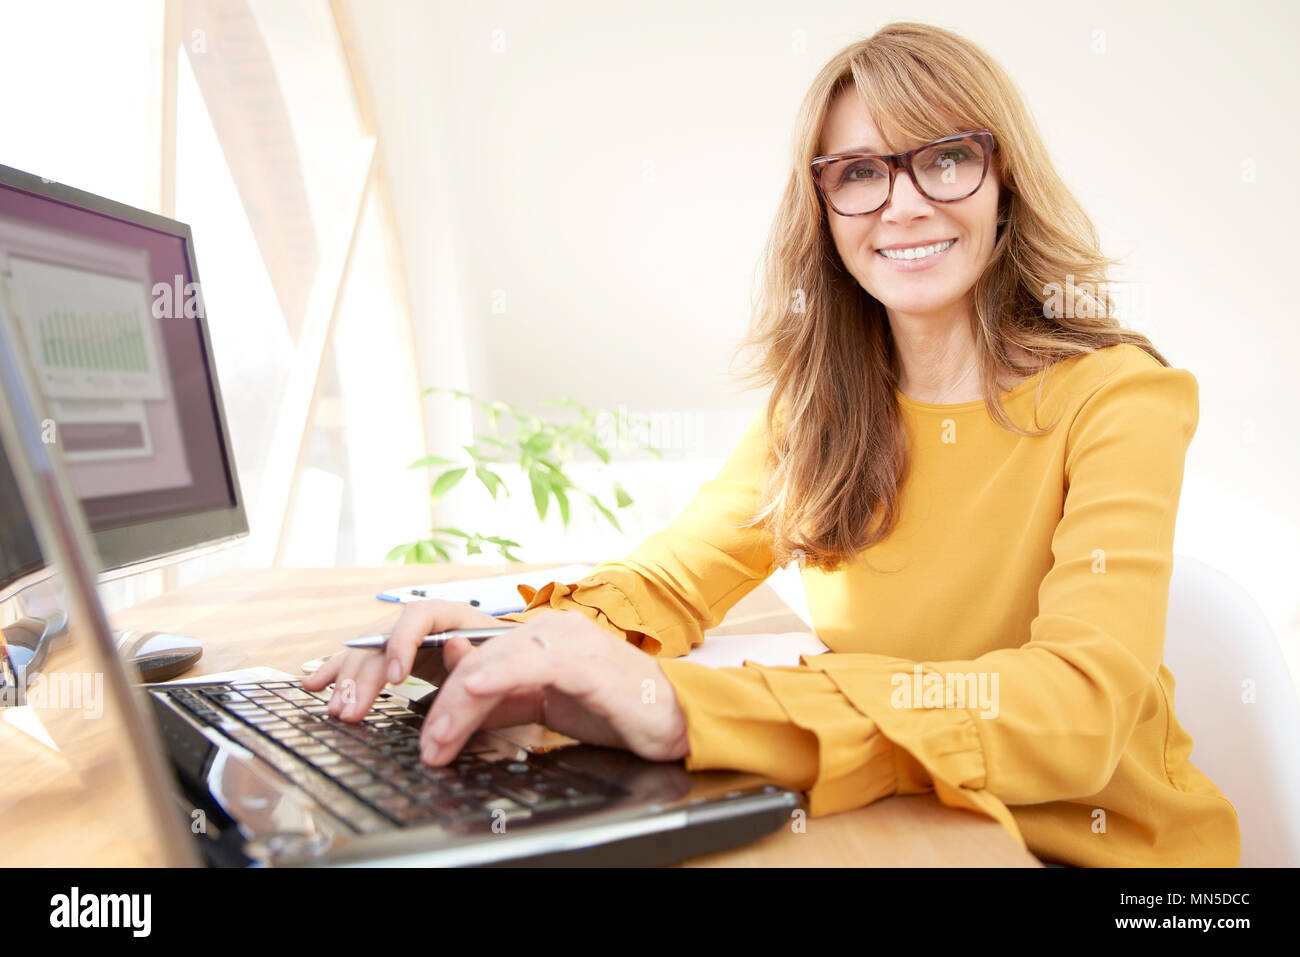 Portrait of a smiling middle aged businesswoman typing on laptop while sitting at desk and looking at camera. Home office. - Stock Image